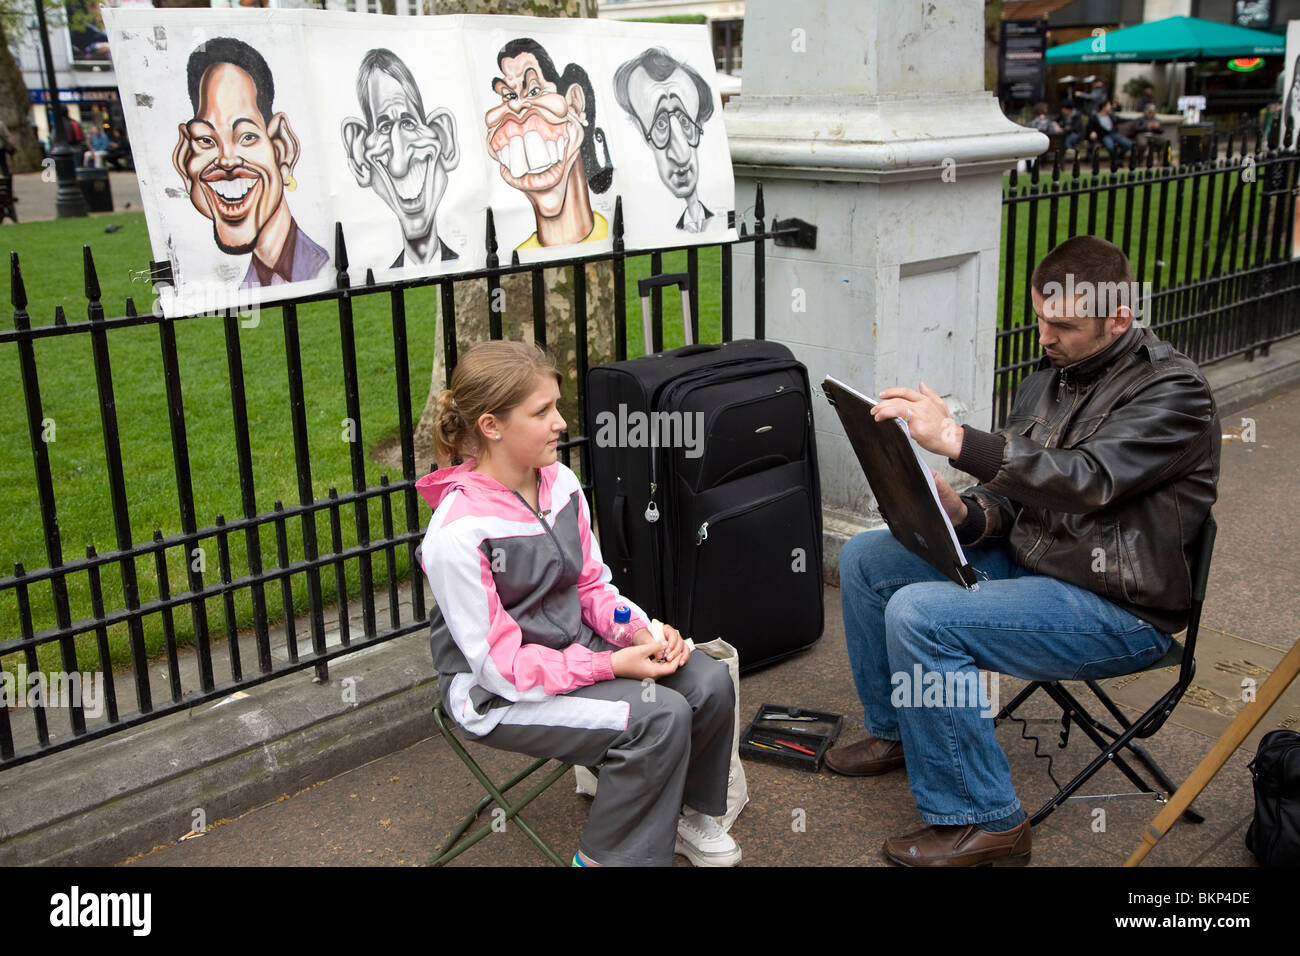 Street portrait artist, Leicester Square, London, England - Stock Image